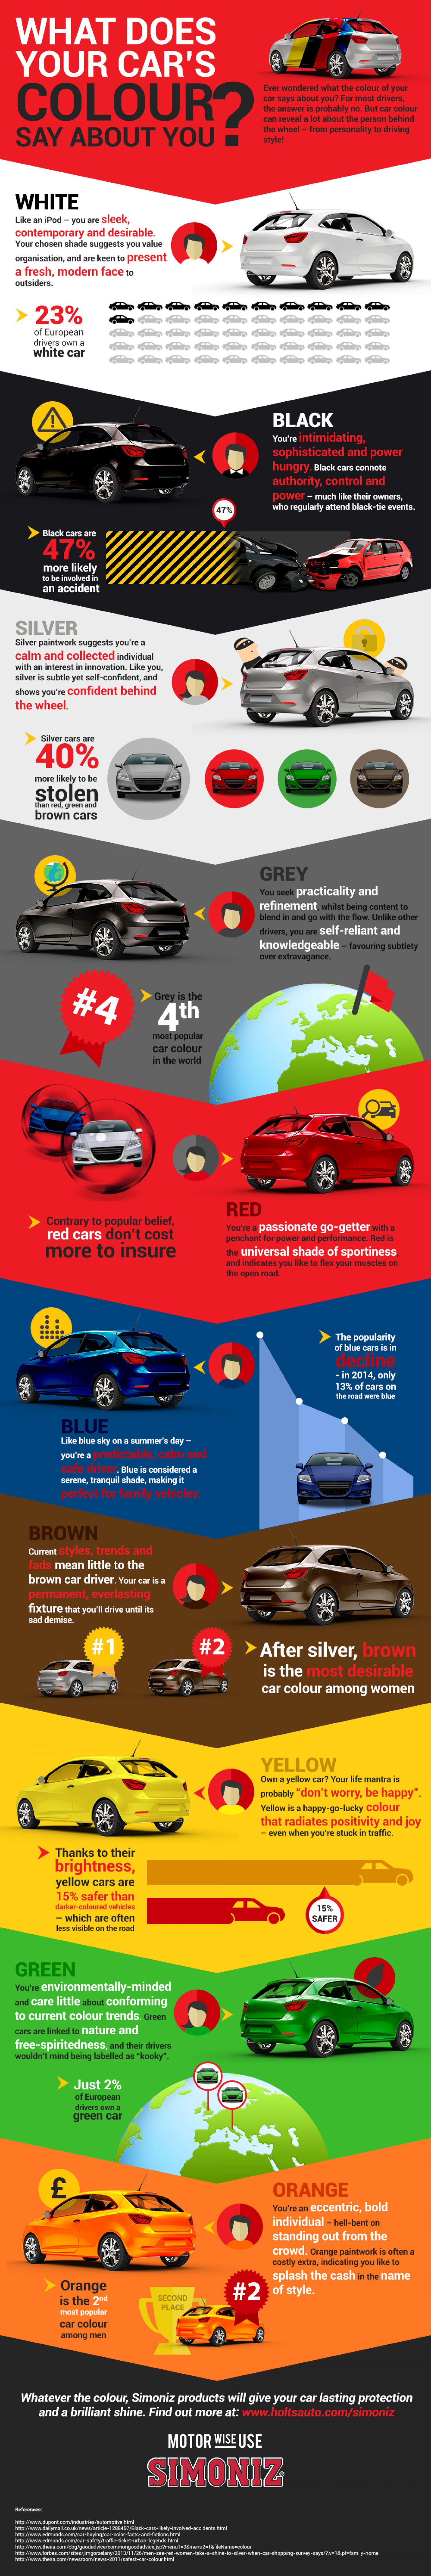 What colour is your car - What Does Your Car Colour Say About You Infographic